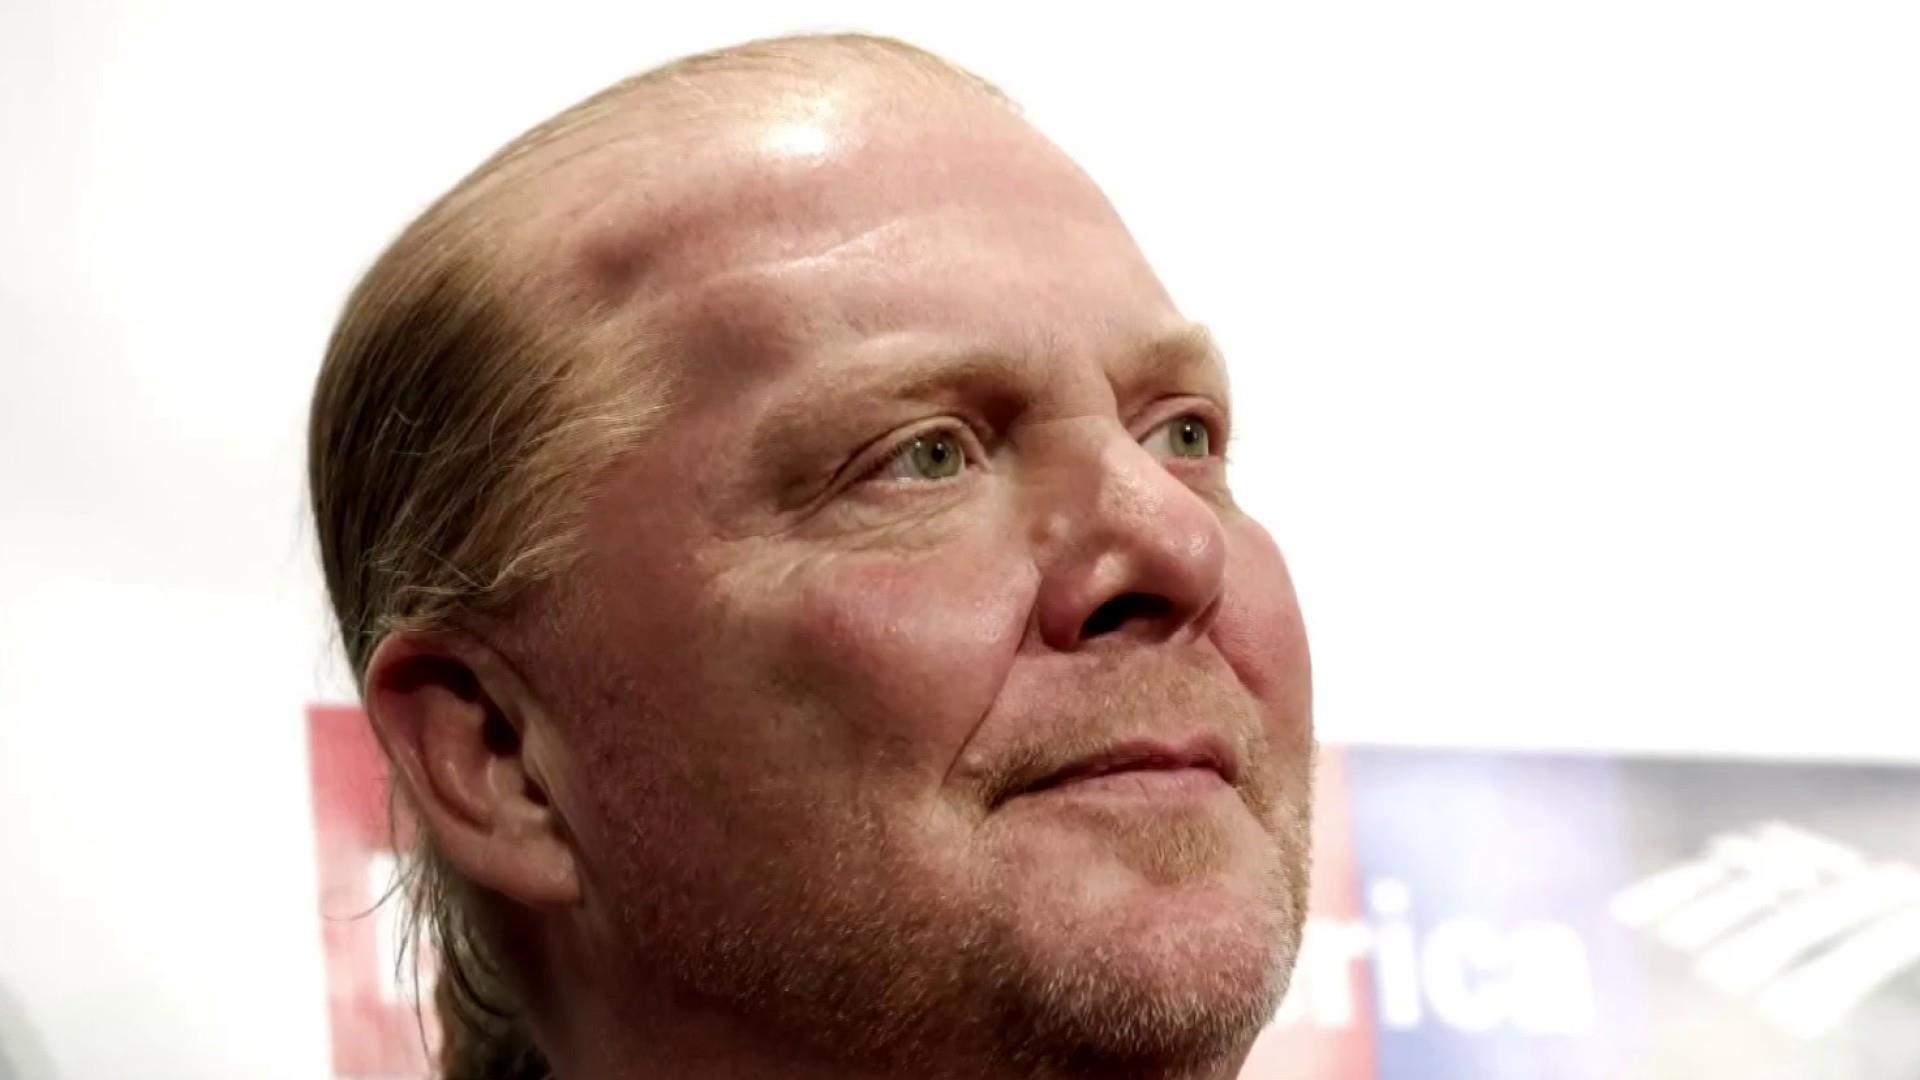 Celebrity chef Mario Batali faces criminal charge